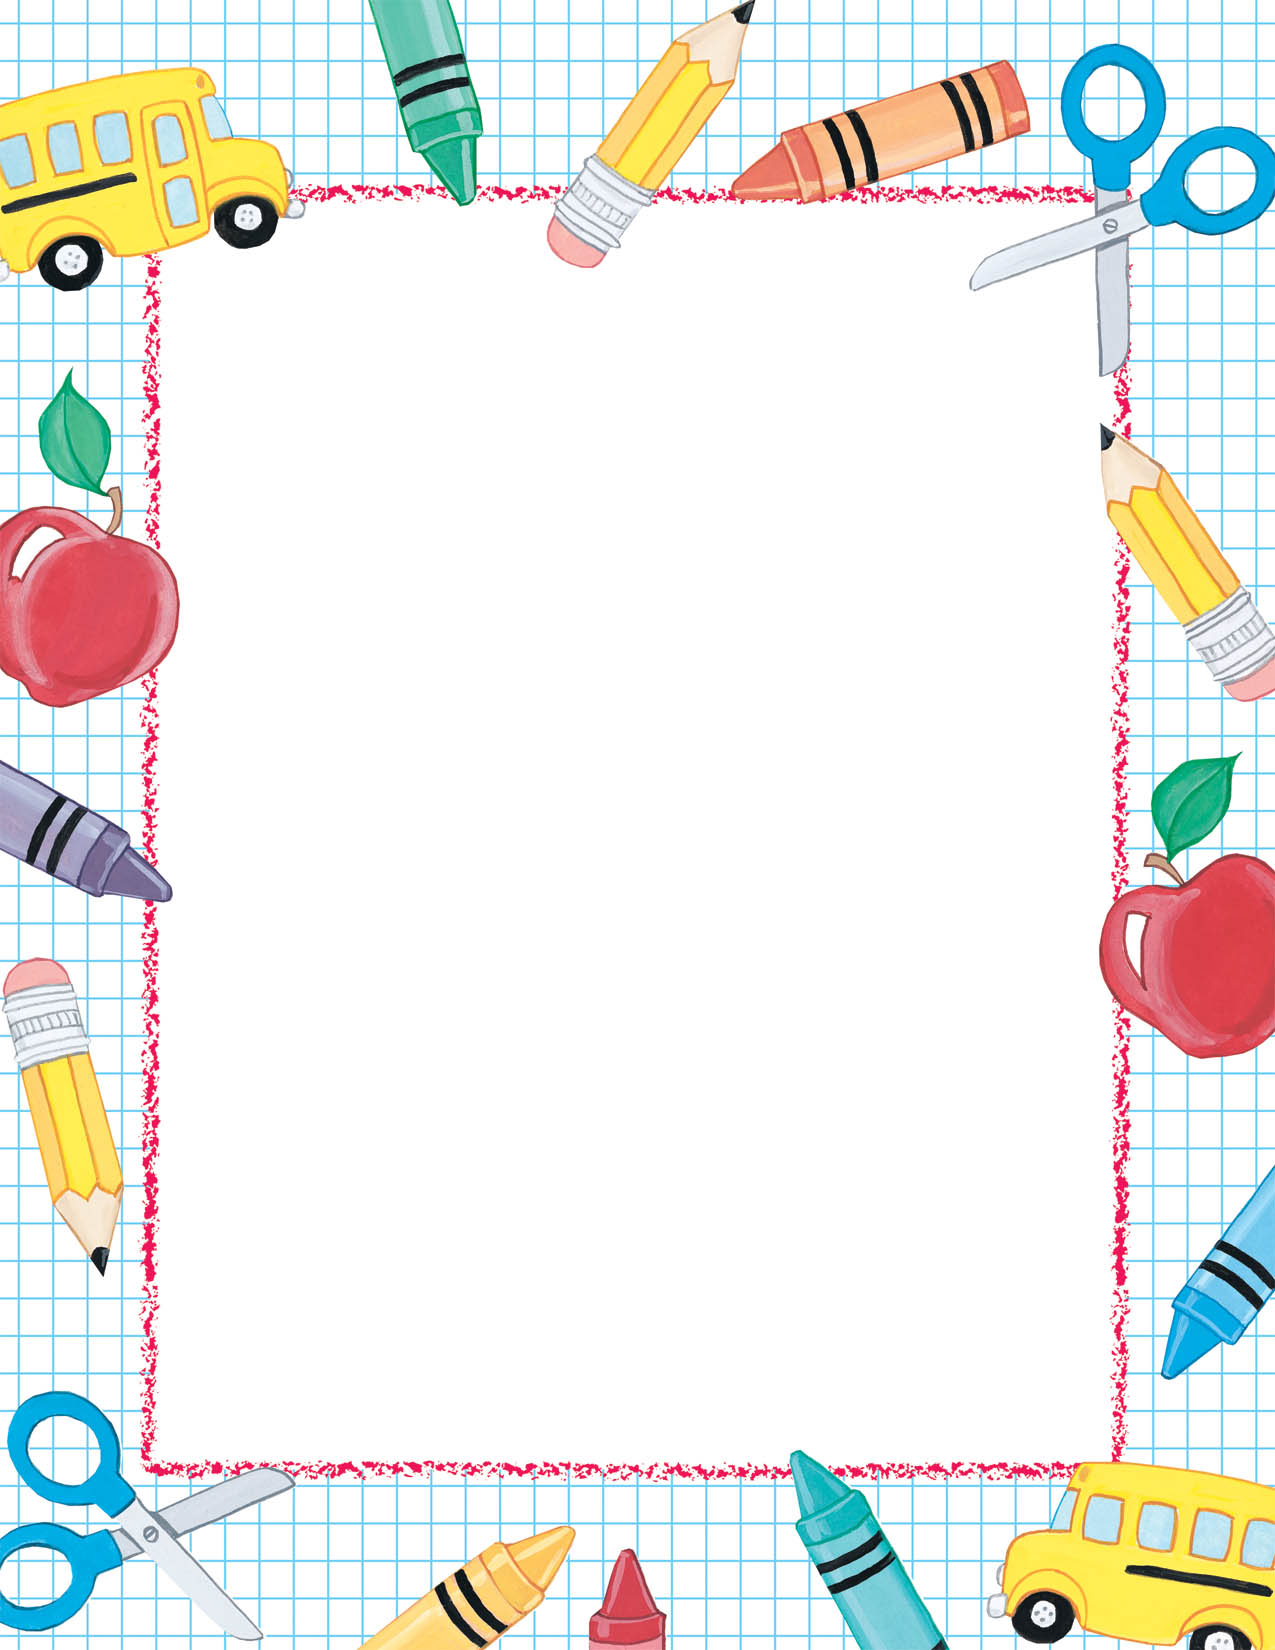 Free Printable School Stationery Borders | Download Them Or Print - Free Printable School Stationery Borders